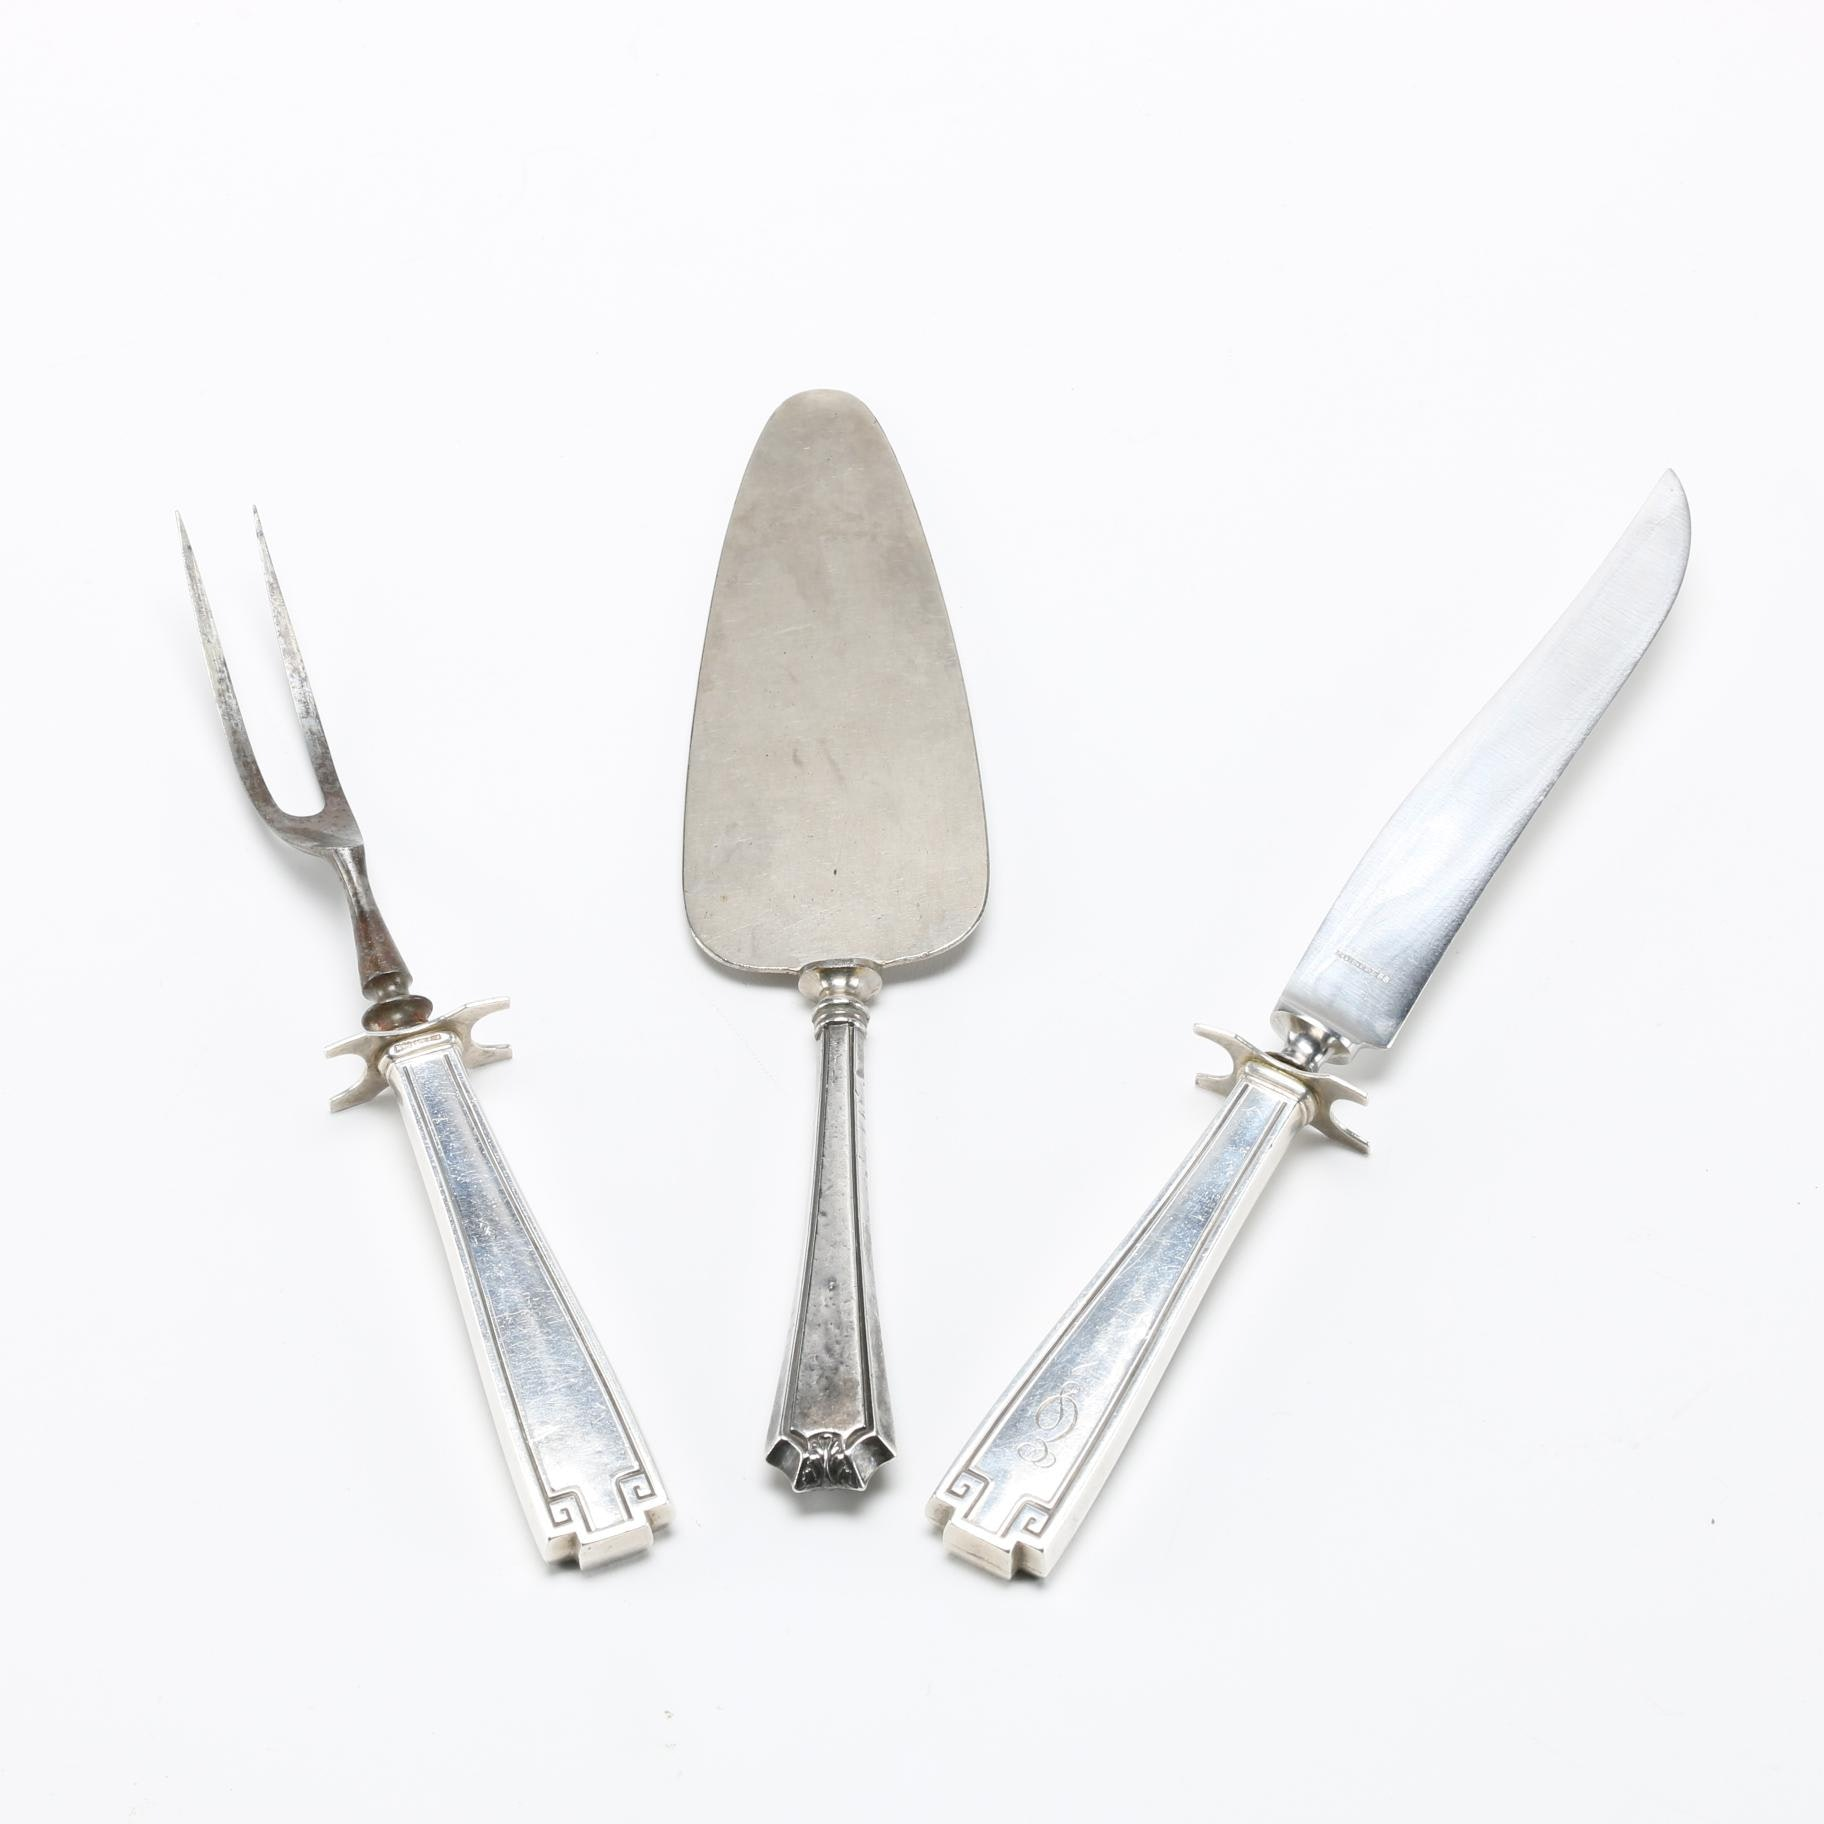 Weighted Sterling Silver Serving Utensils Featuring Gorham